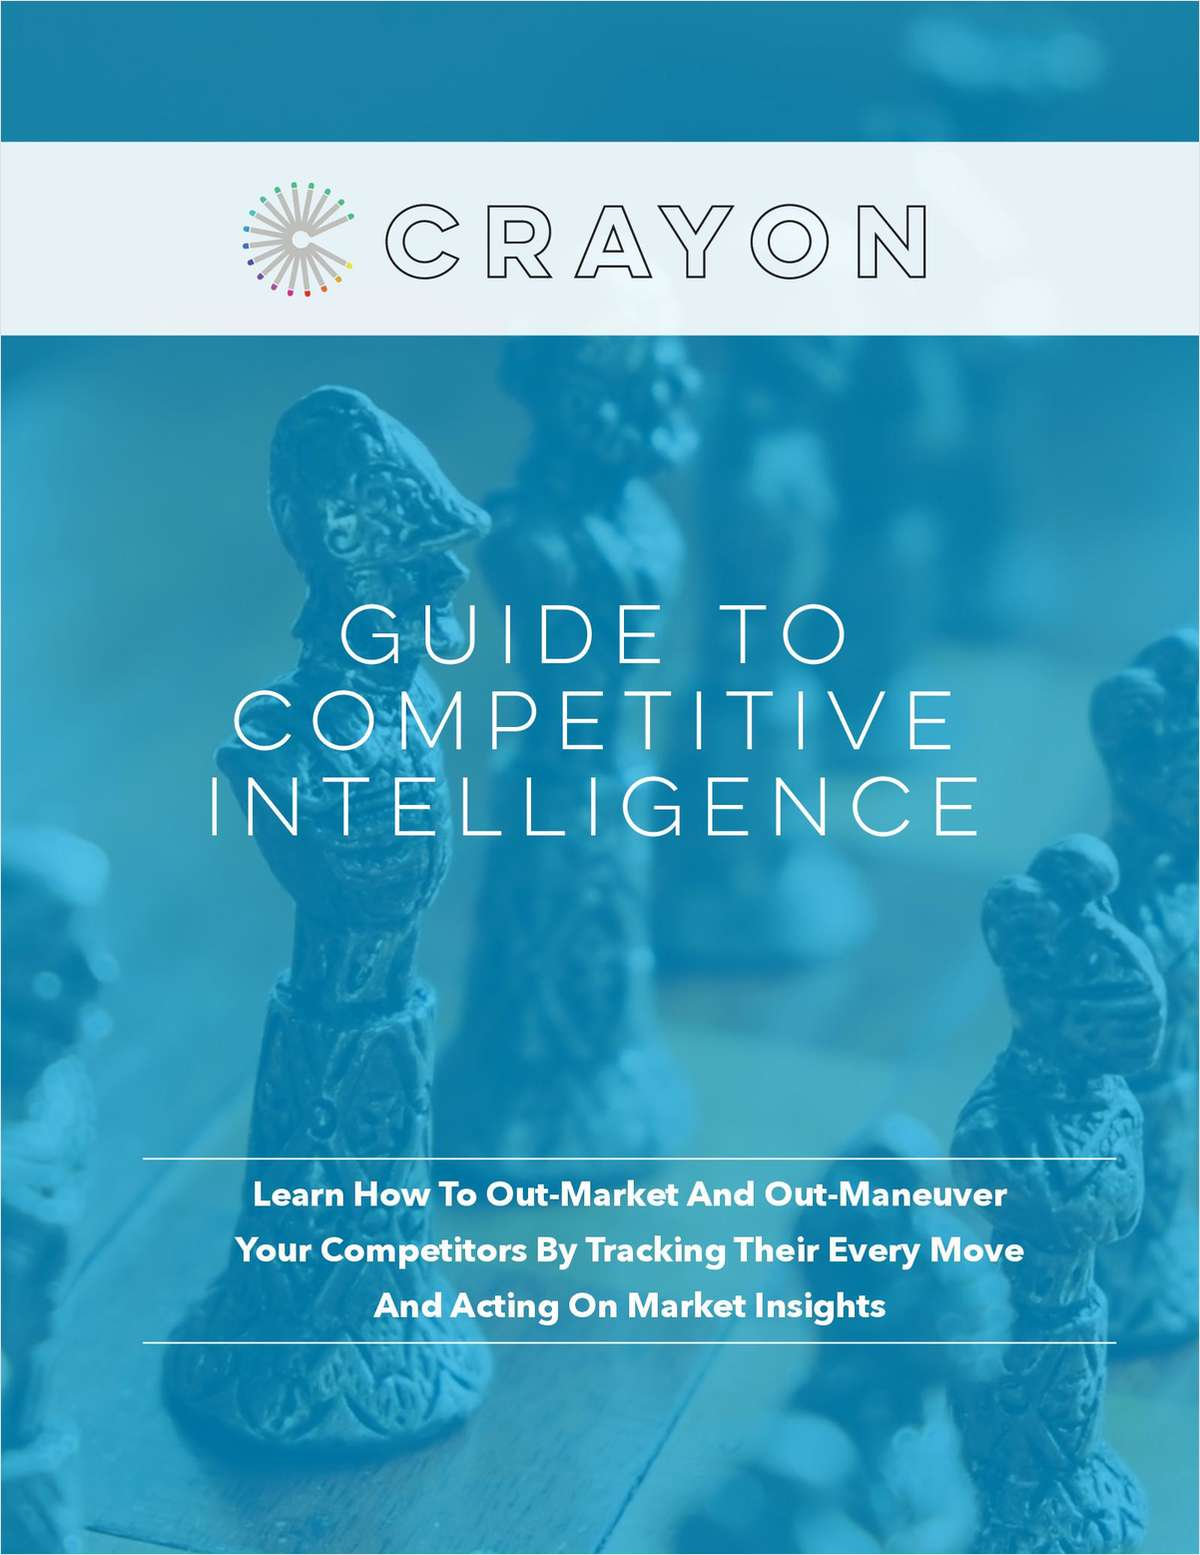 Guide to Competitive Intelligence